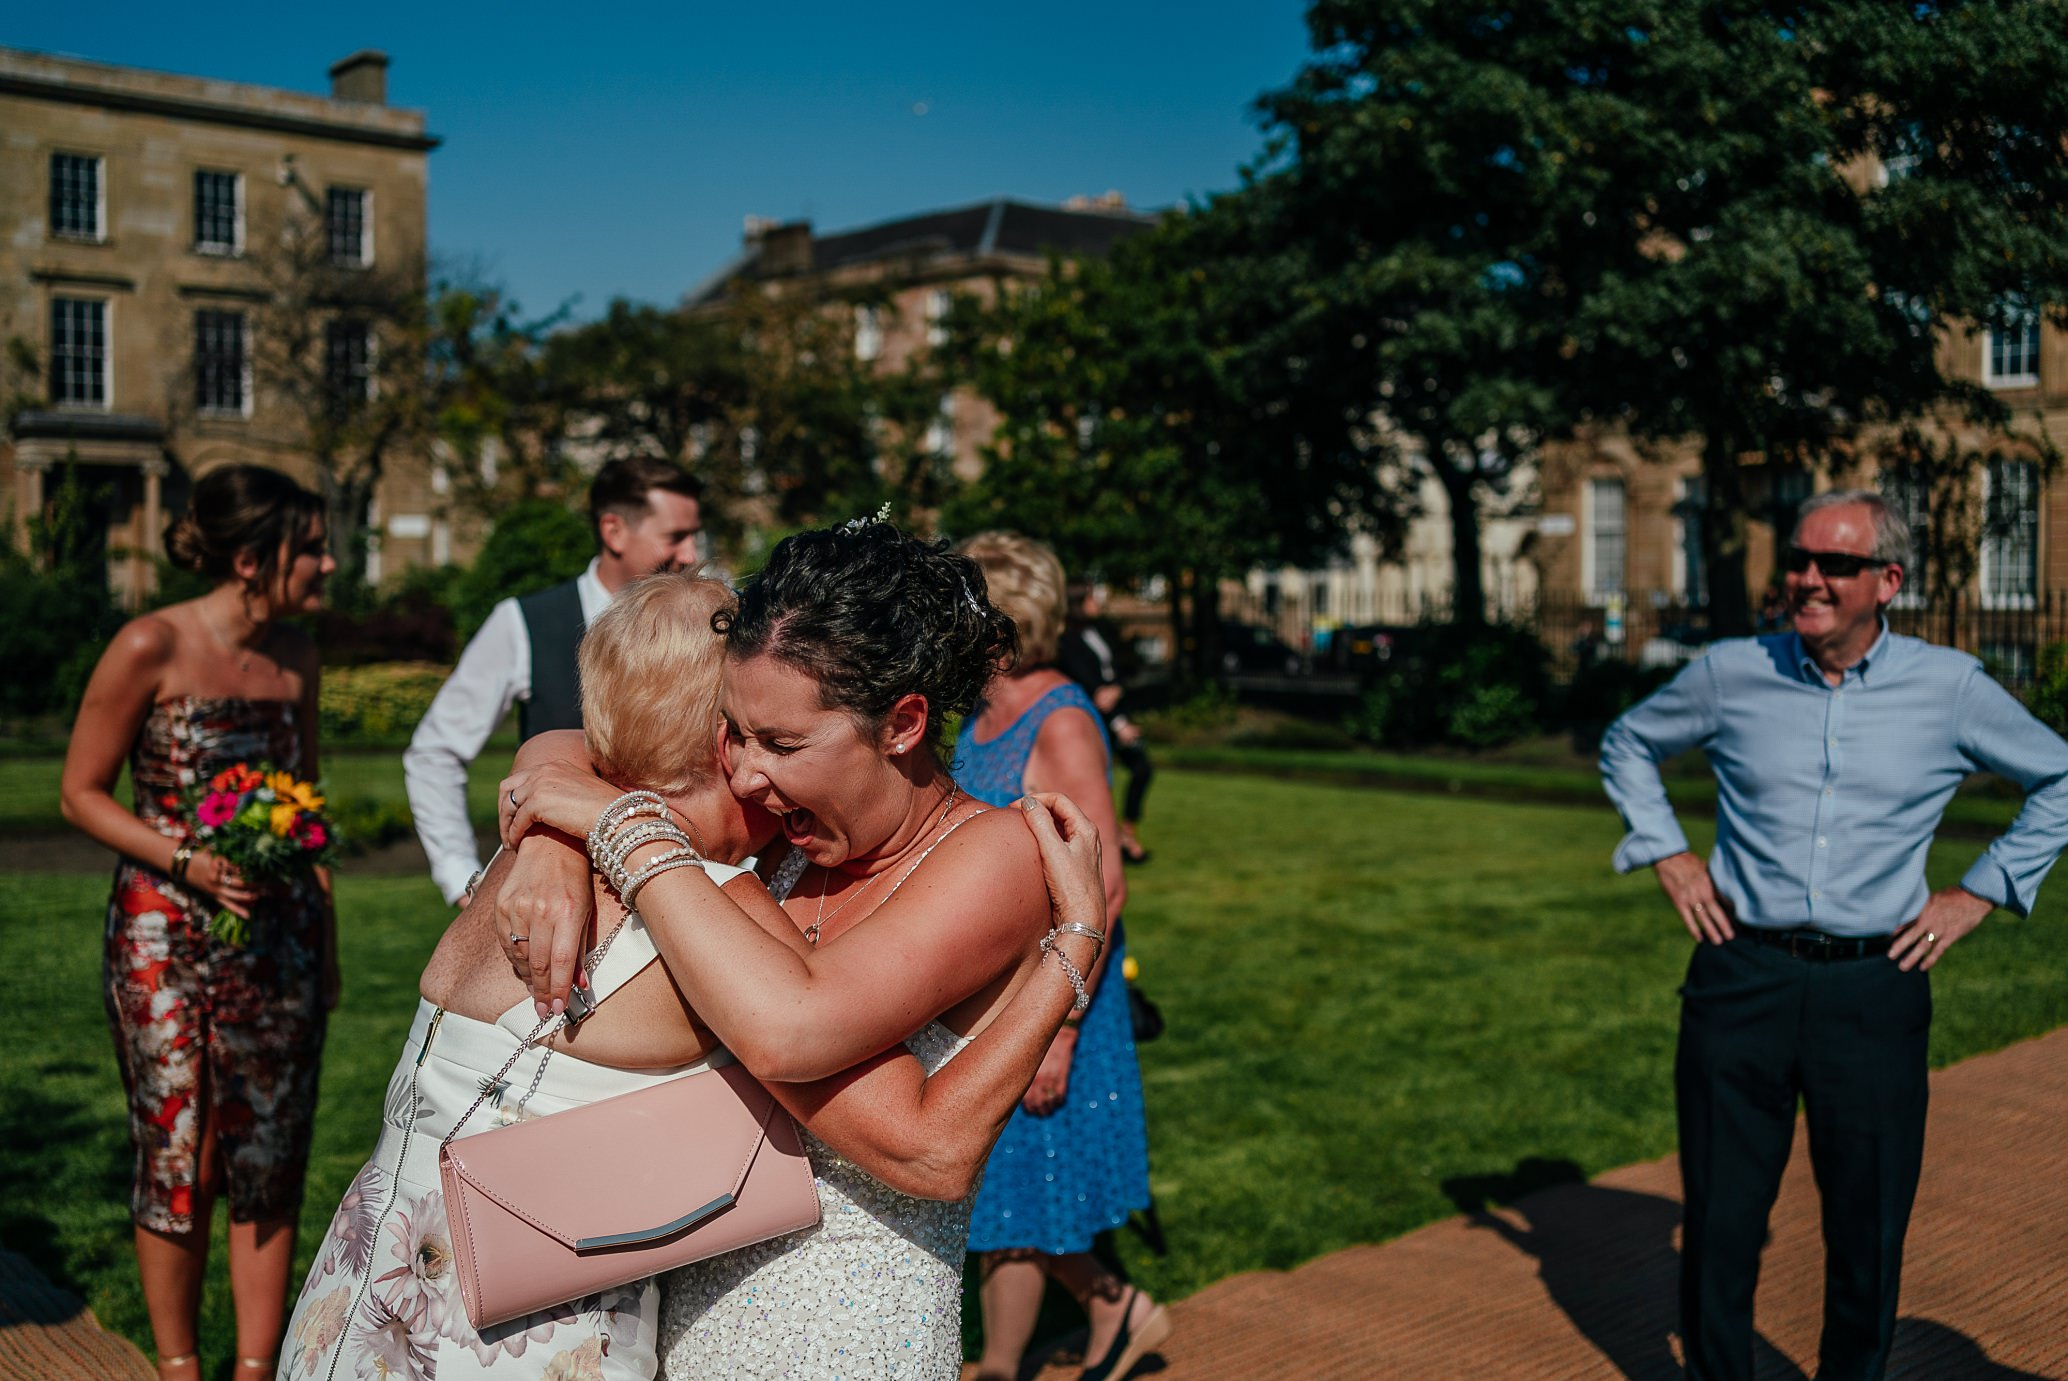 blythswood square glasgow private gardens wedding ceremony bride hugging mum after wedding ceremony laughing